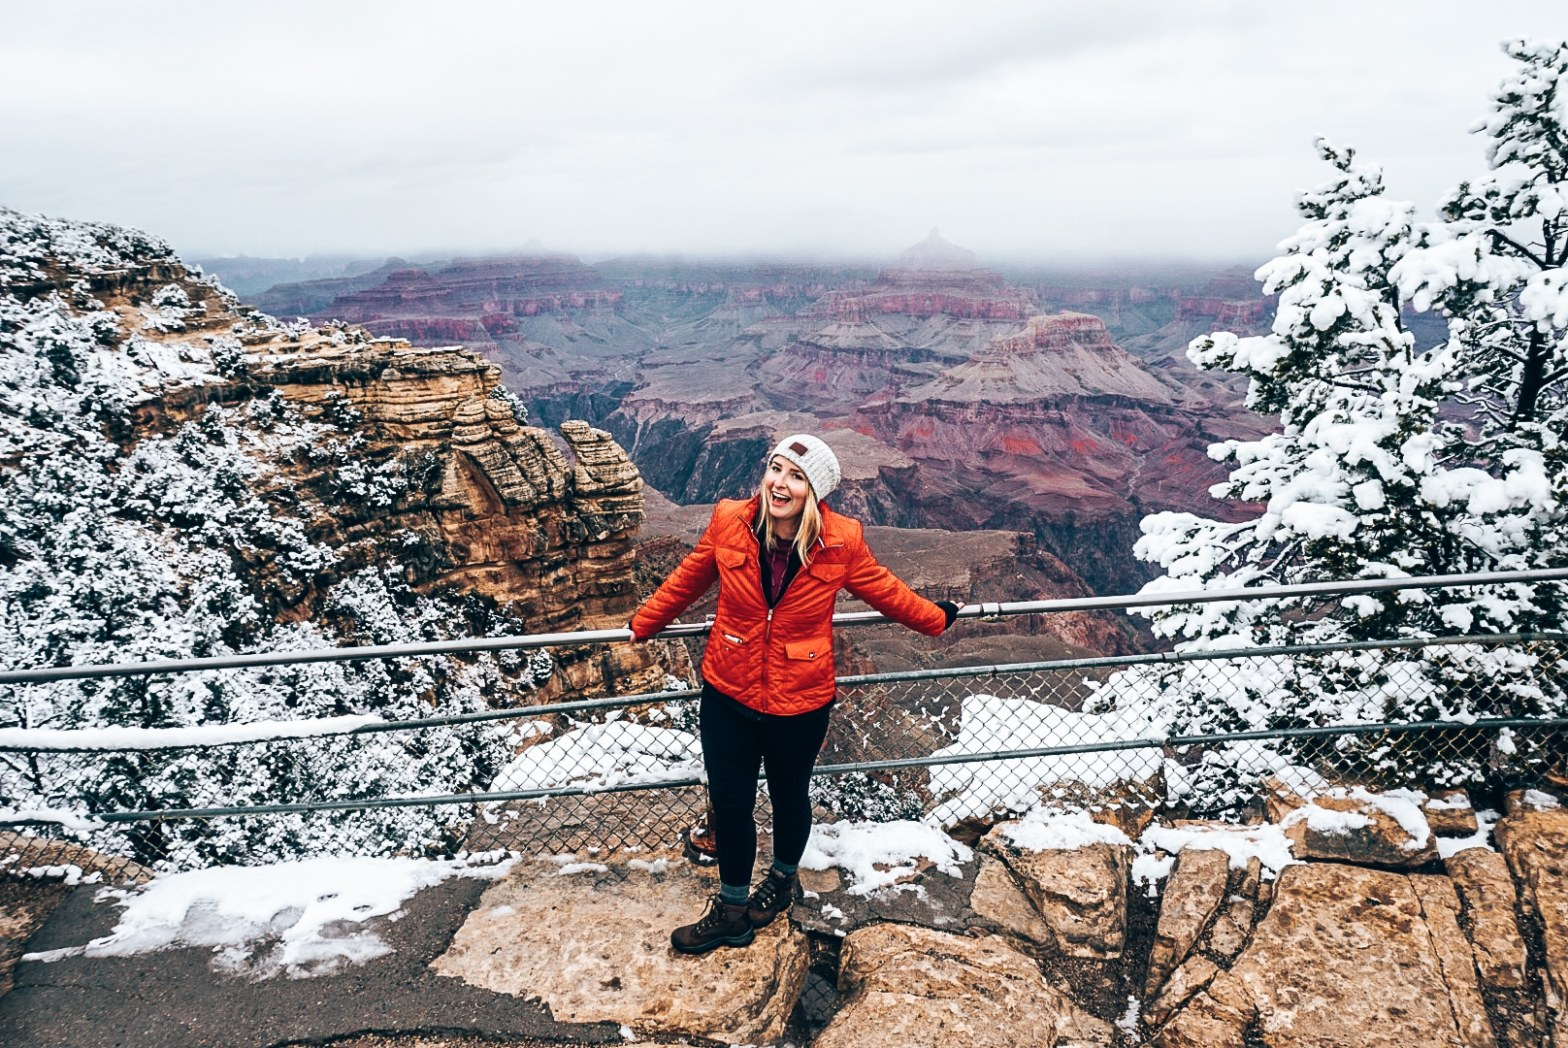 Woman standing along the fenceline at the Grand Canyon during the winter, with the trees and rocked covered in snow